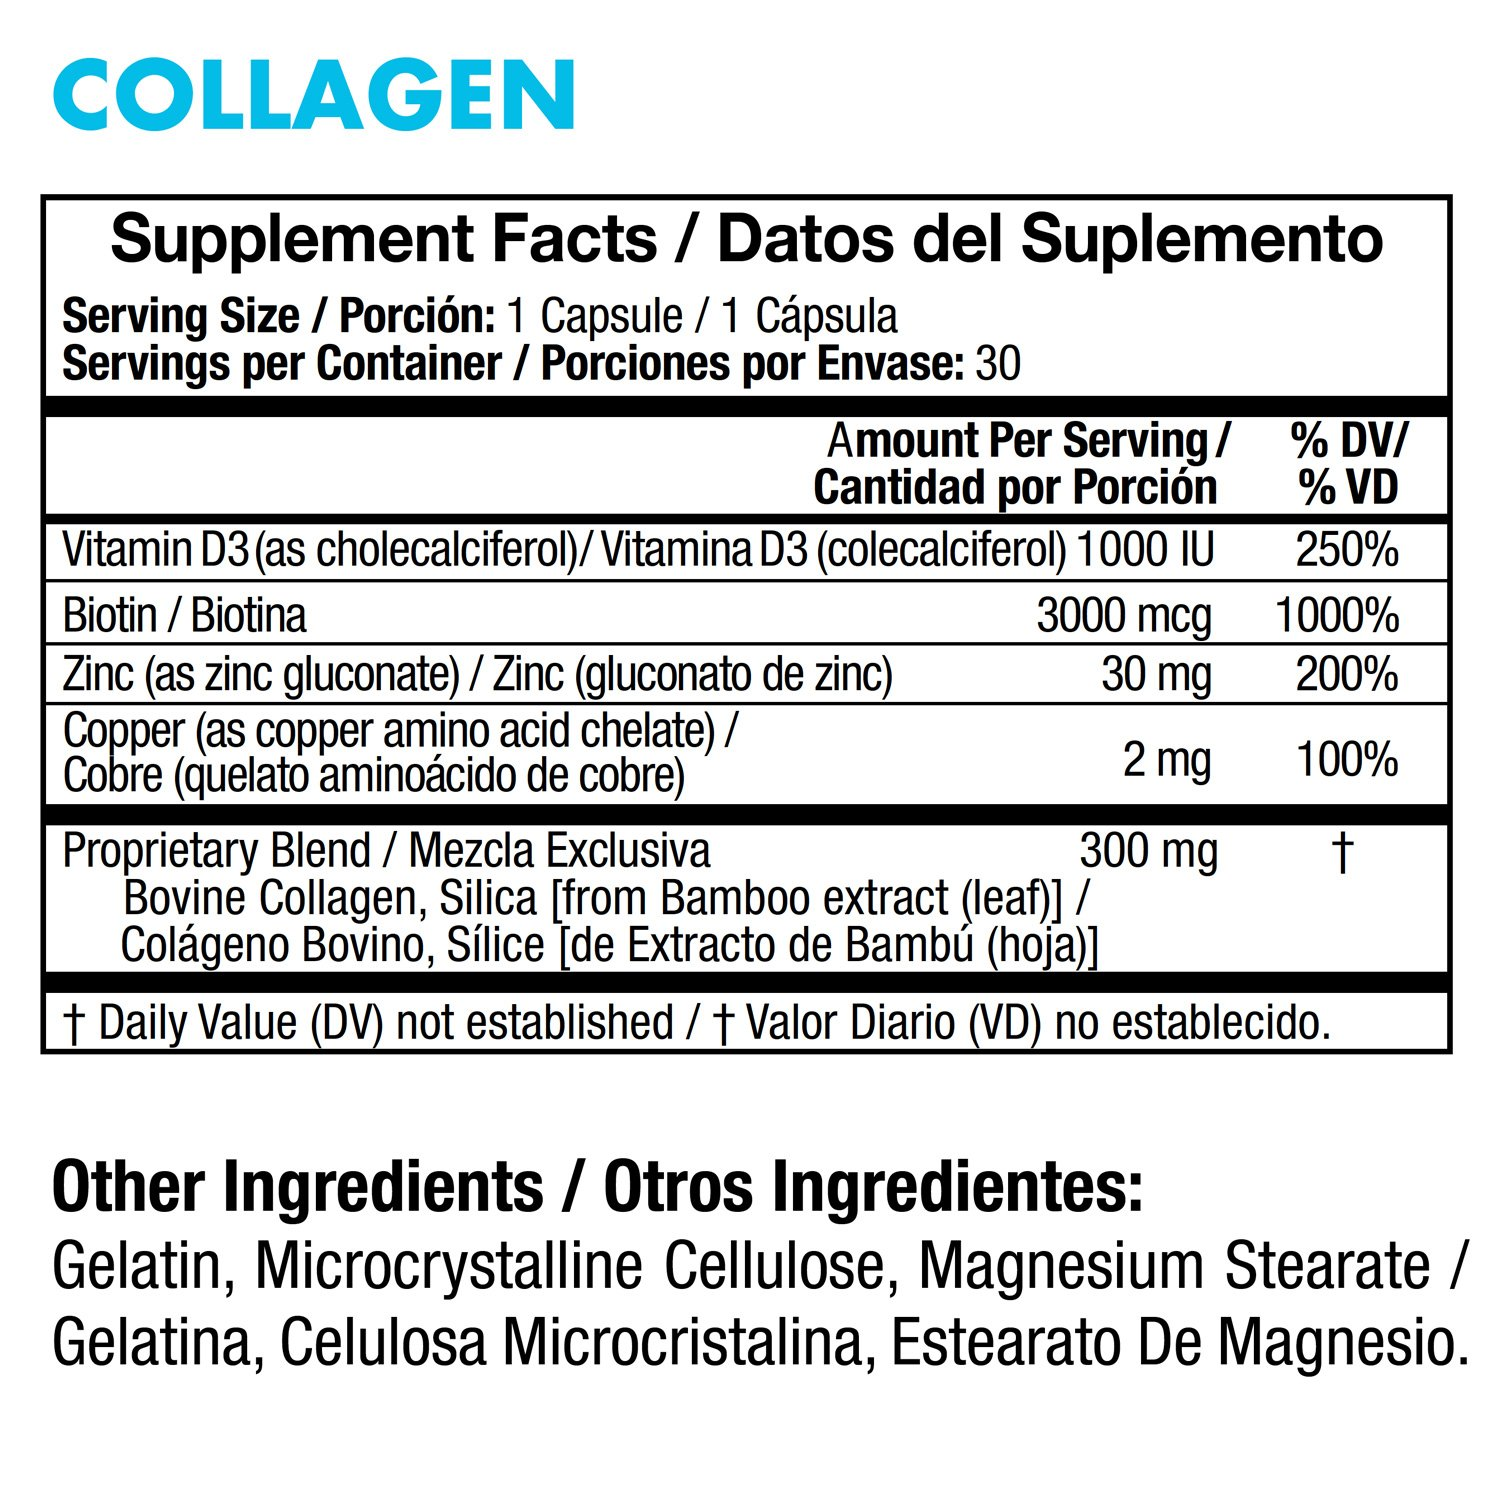 Collagen - Supports Healthy Joints and Skin, Contains Biotin, Vitamin D3, Zinc, Copper and Silica - Colágeno para Articulaciones, Huesos, Cabello y Uñas ...